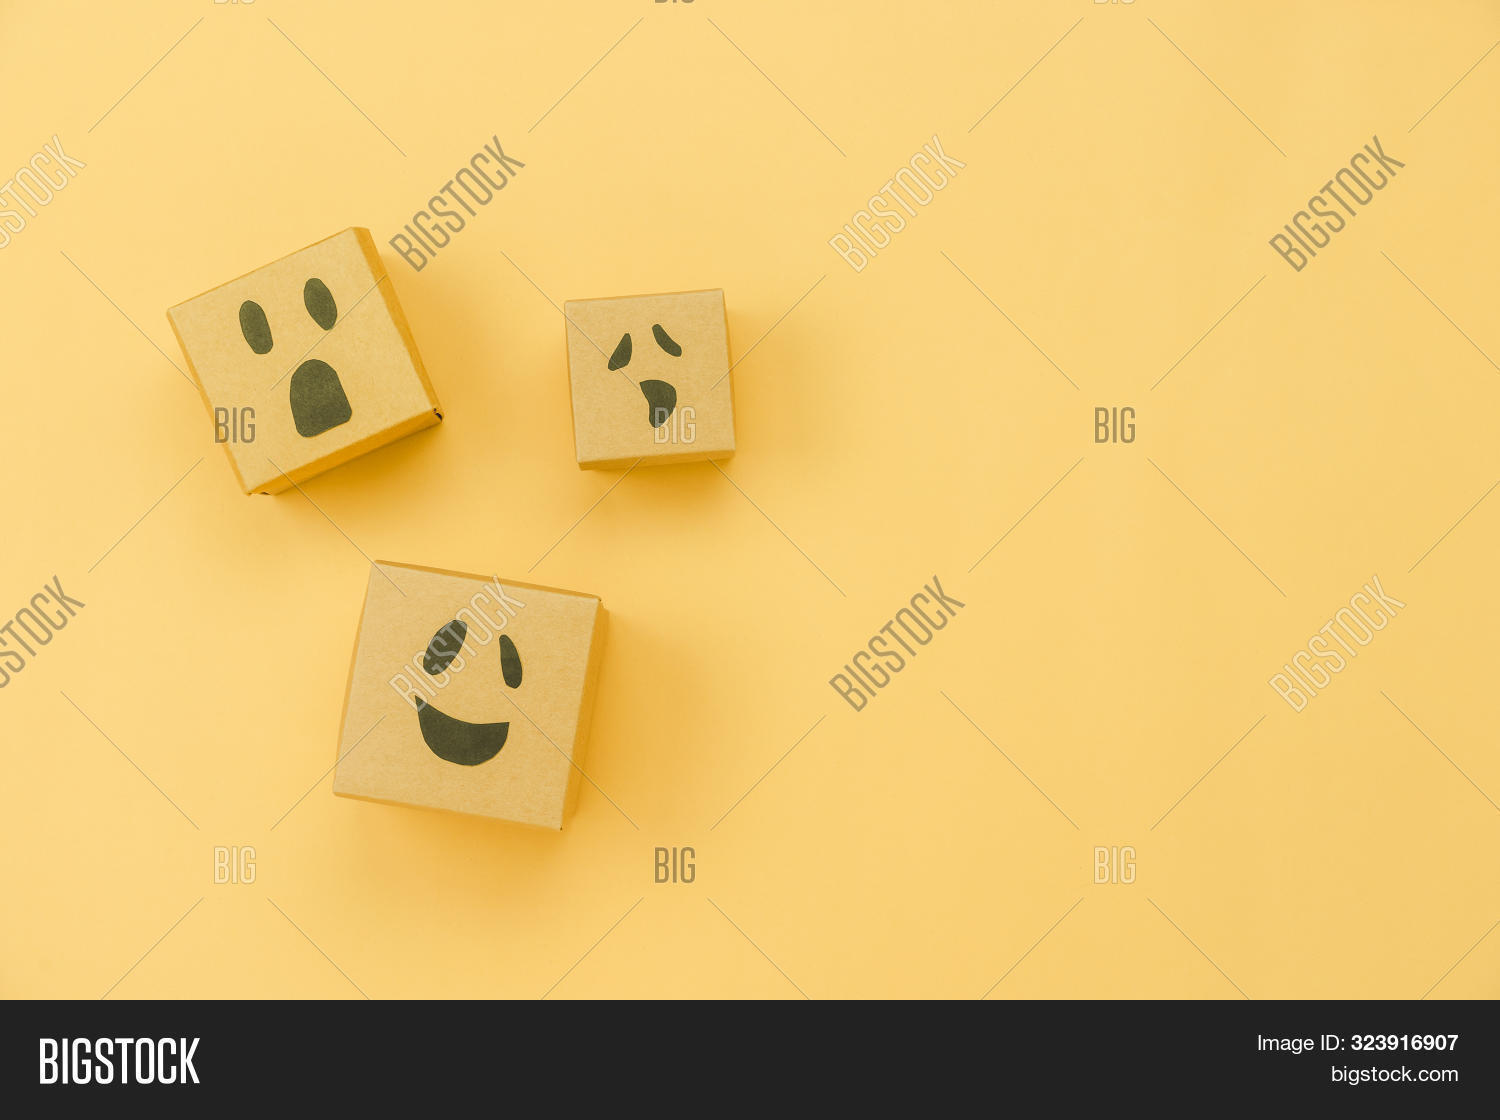 Table Top View Image Photo Free Trial Bigstock